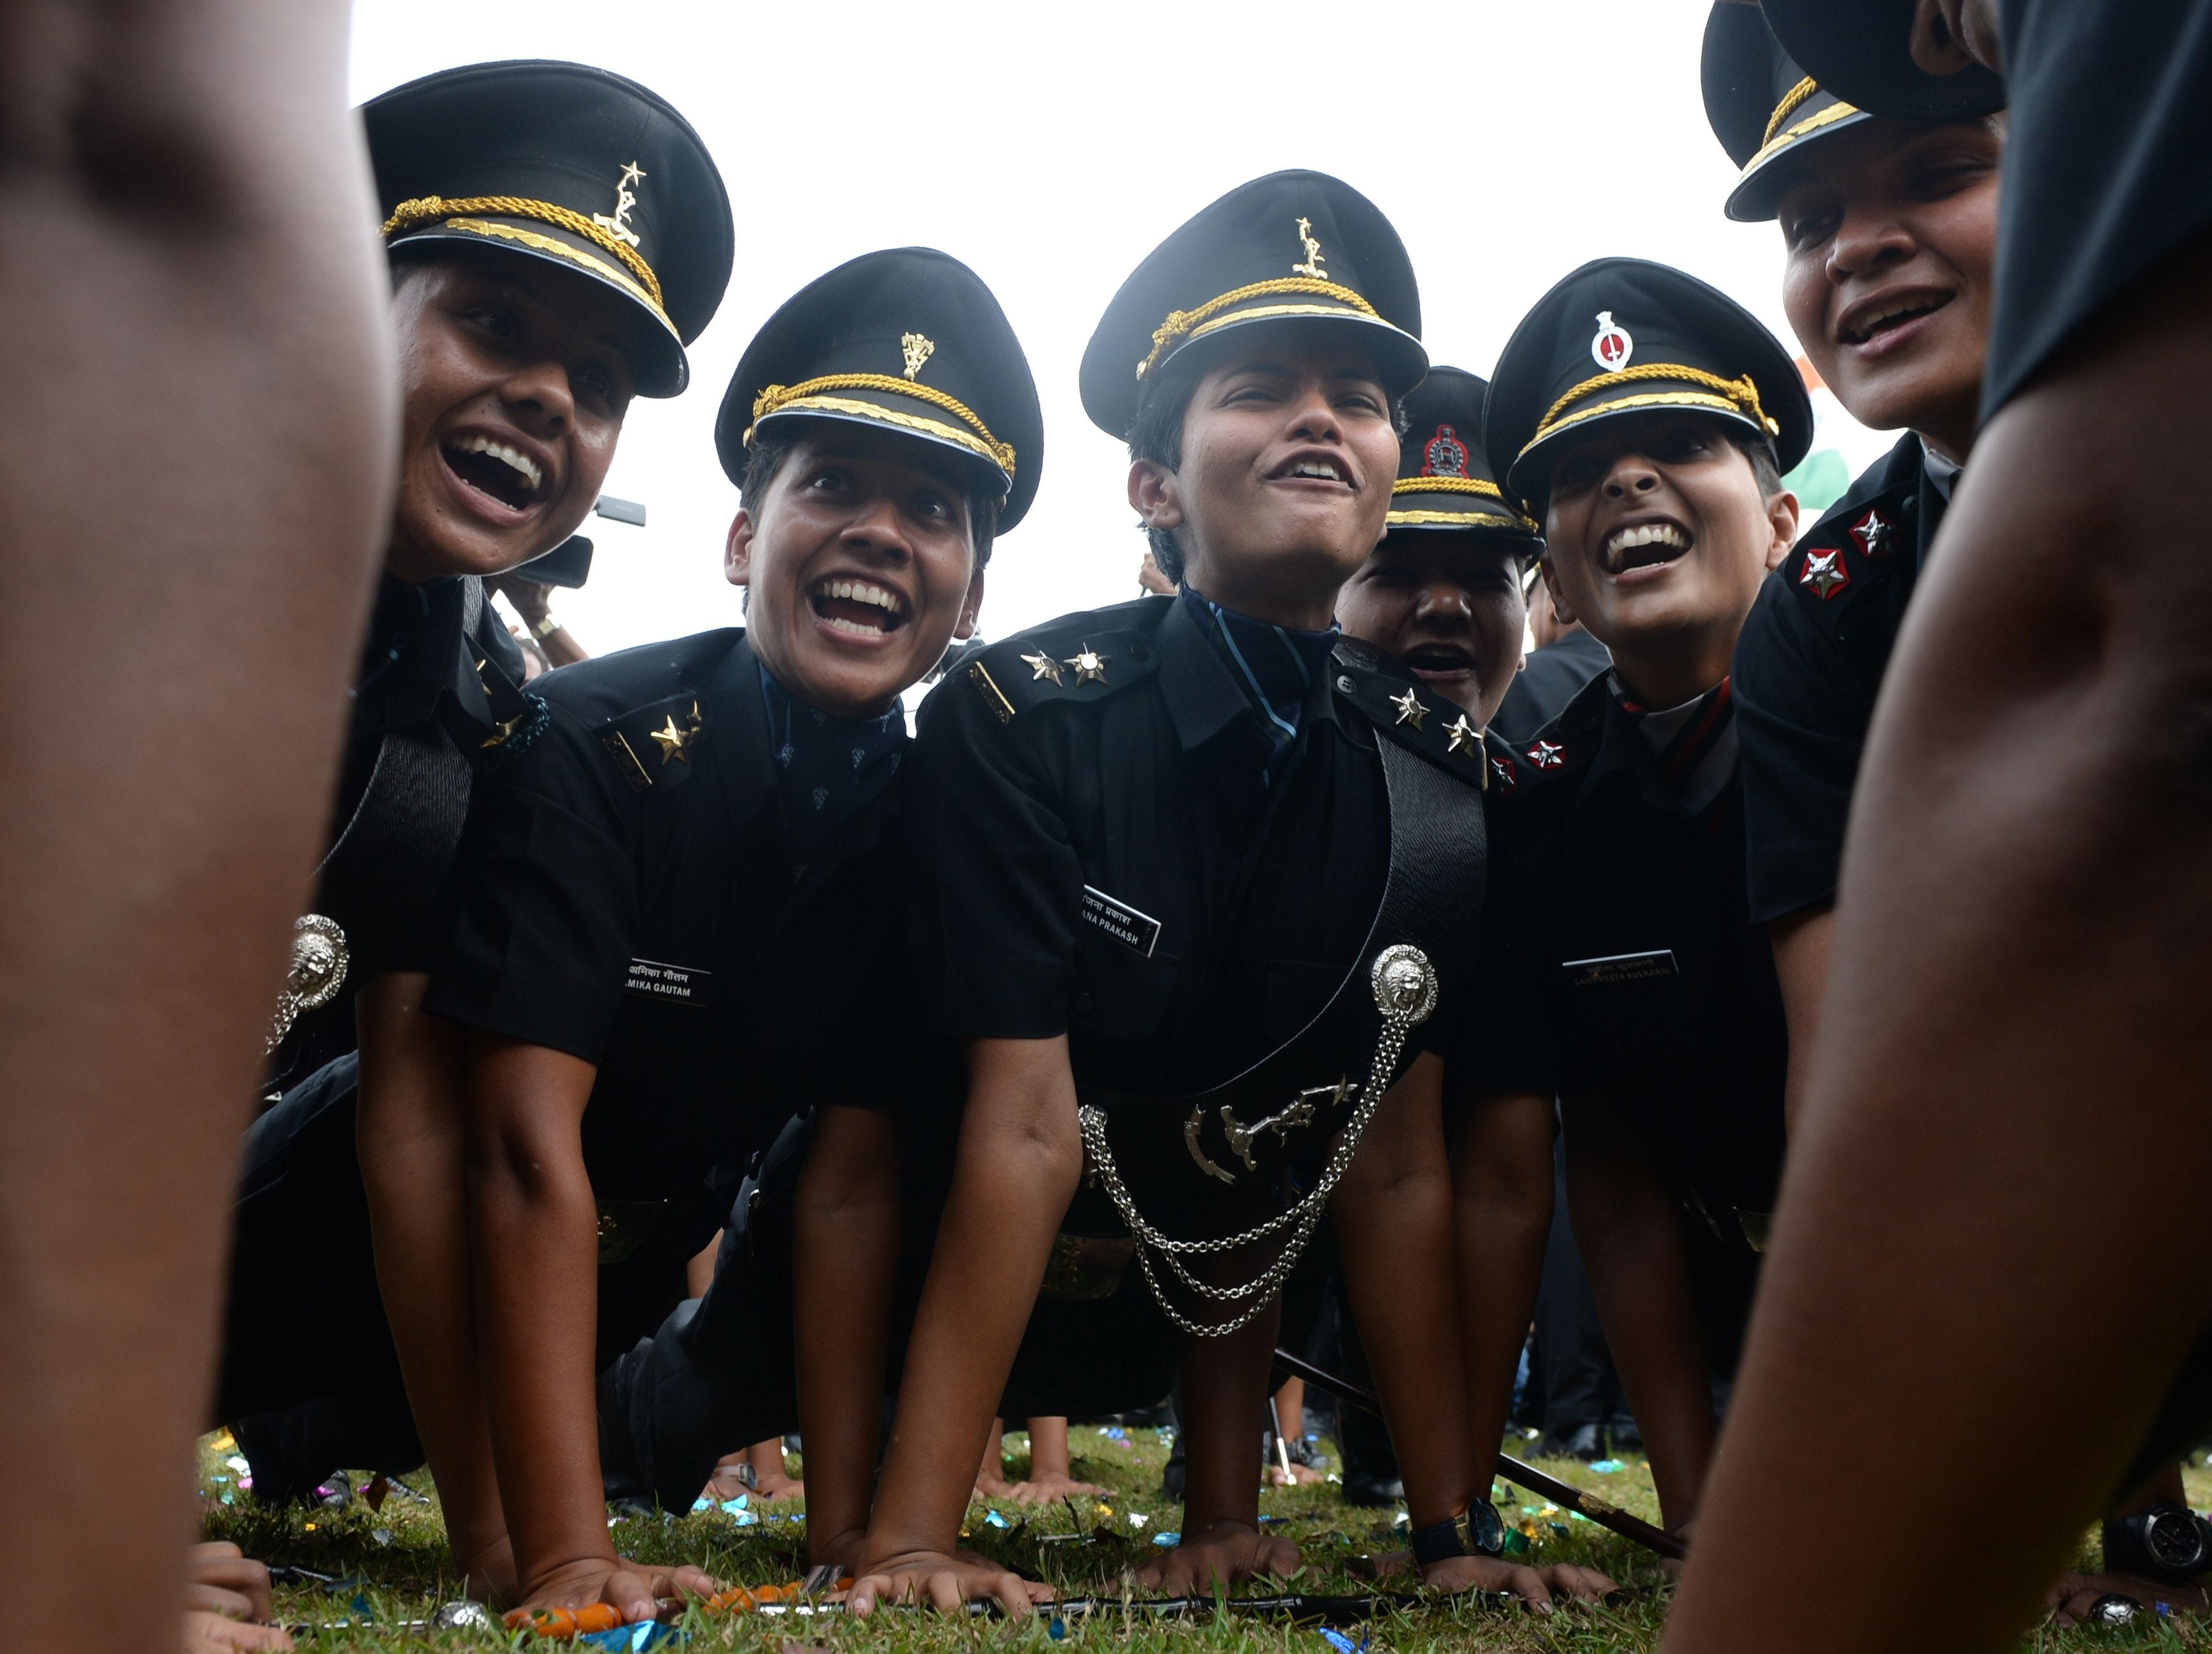 March 10, 2018: Indian army cadets celebrate after their graduation ceremony at the Officers Training Academy in Chennai.